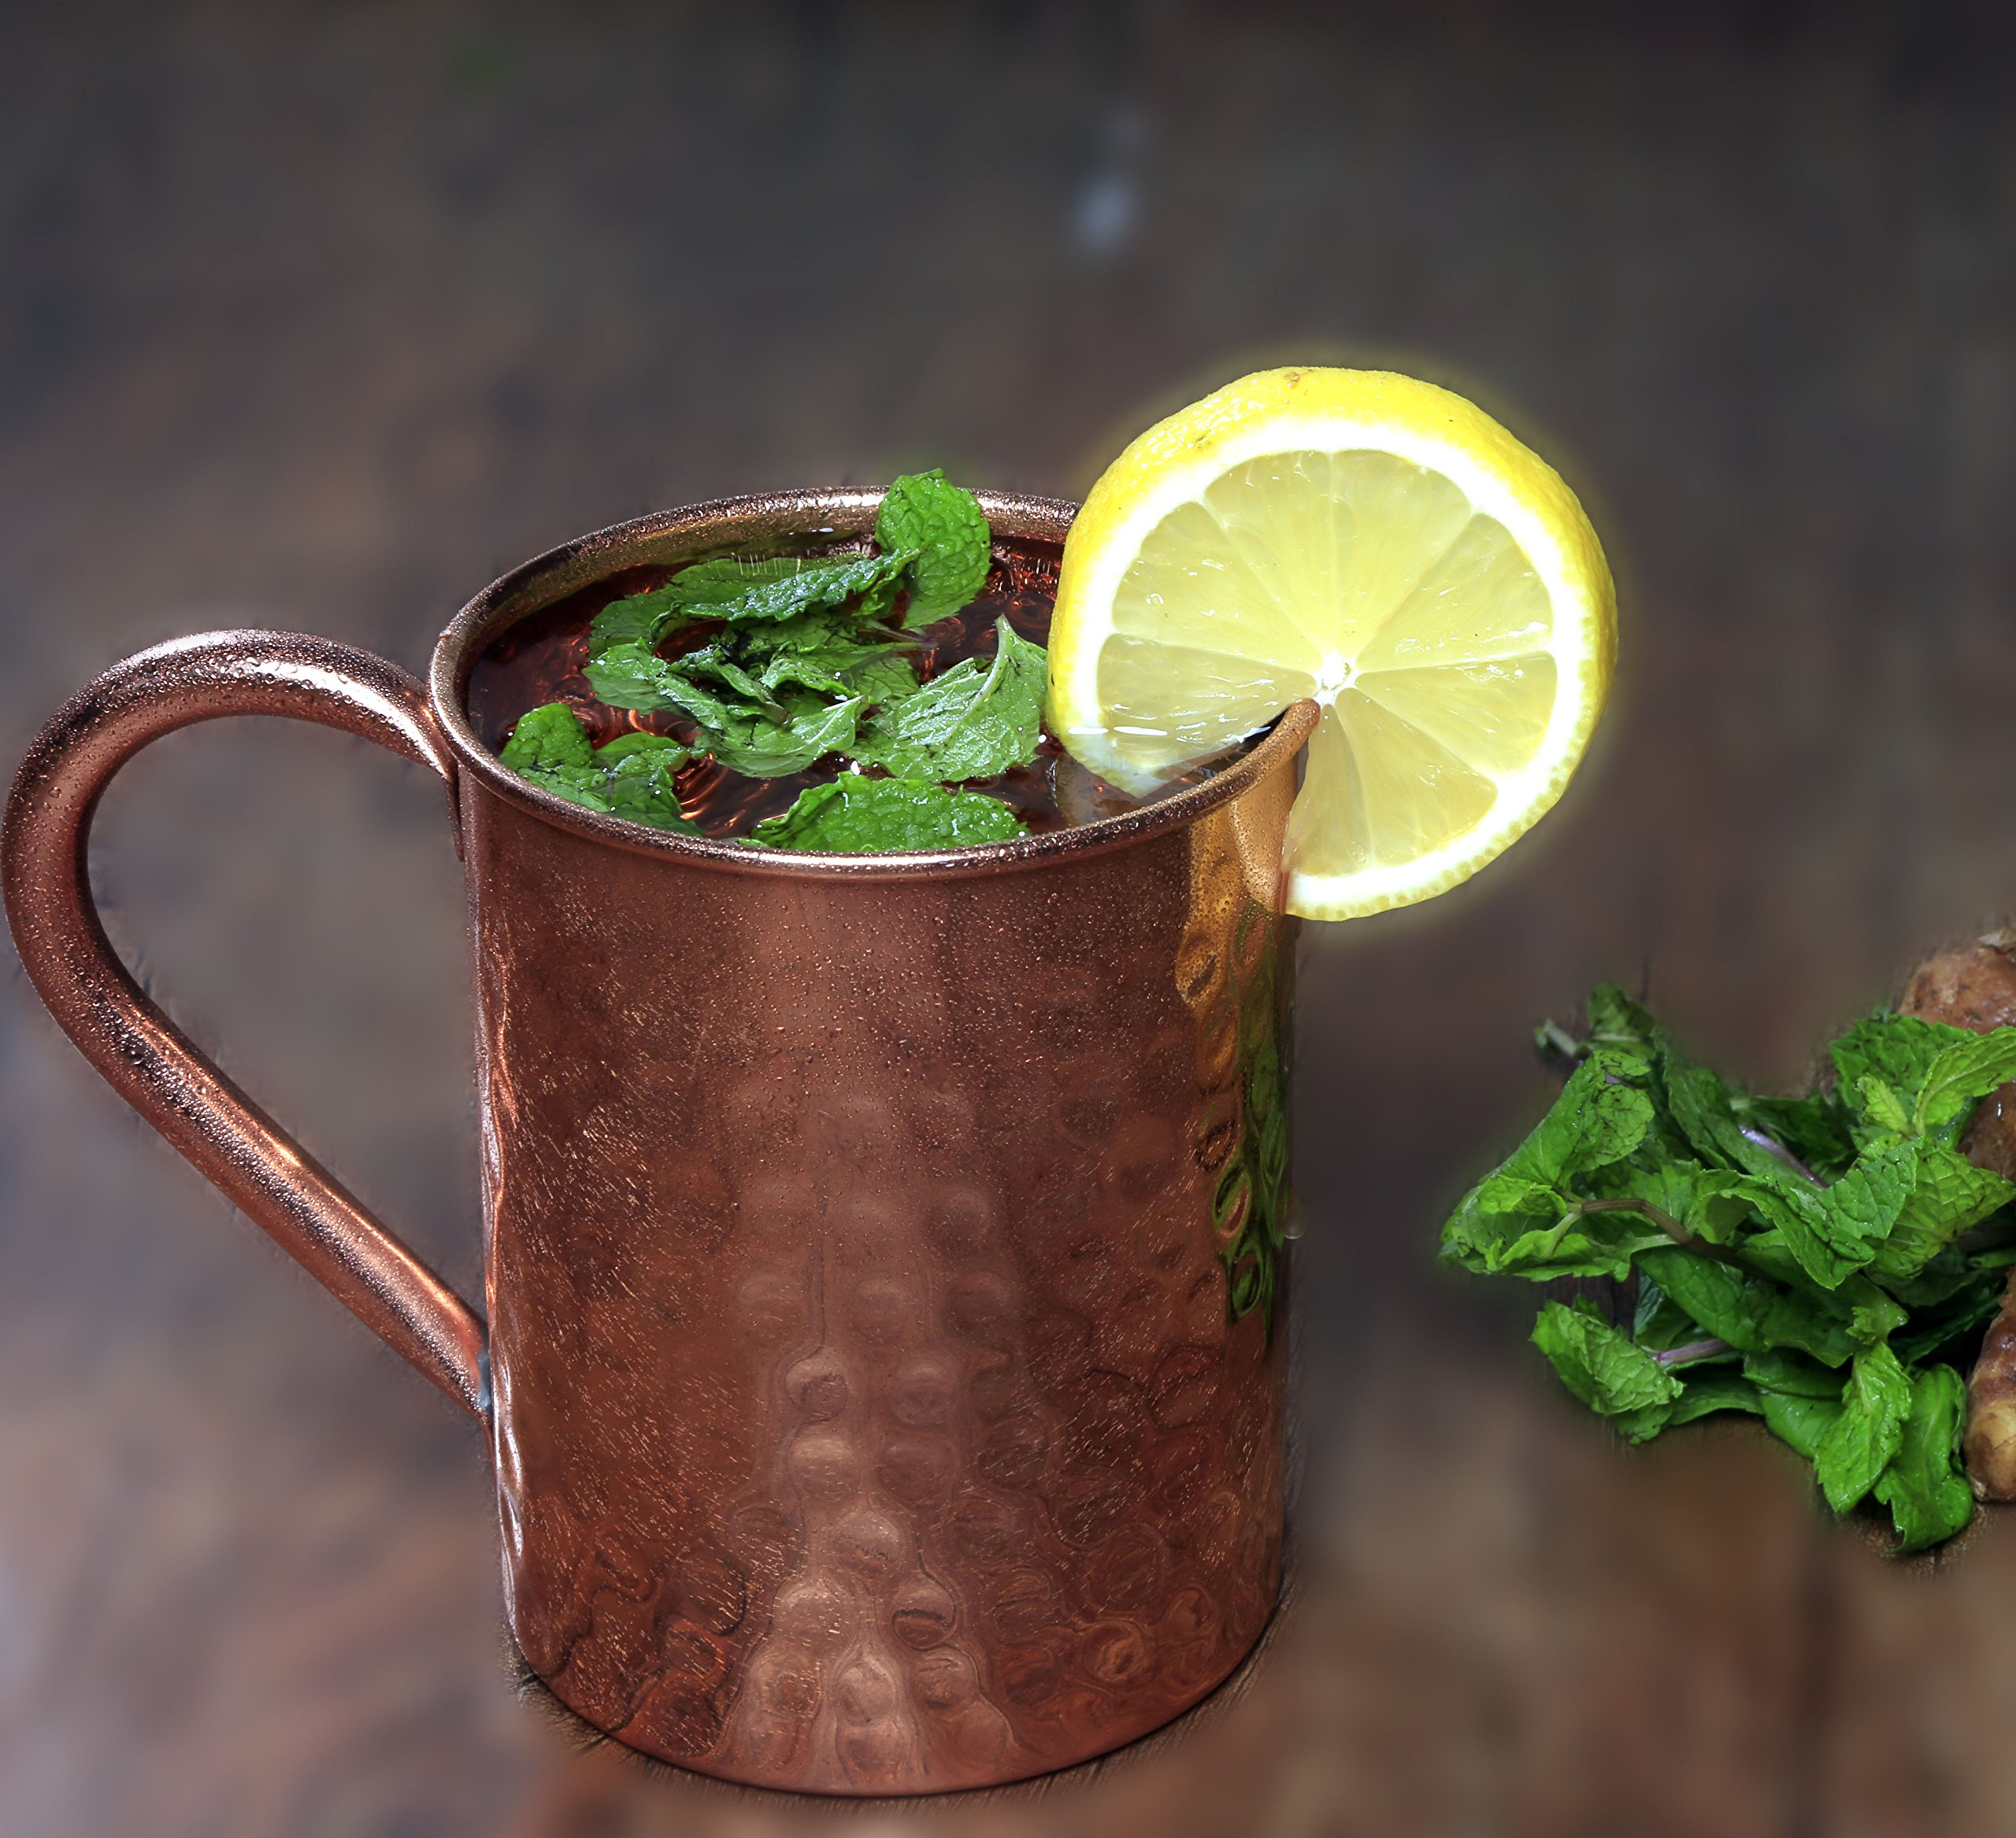 Melange Set of 4 Copper Classic Mug for Moscow Mules - 16 oz - 100% Pure Hammered Copper - Heavy Gauge - No lining - Includes FREE Recipe book